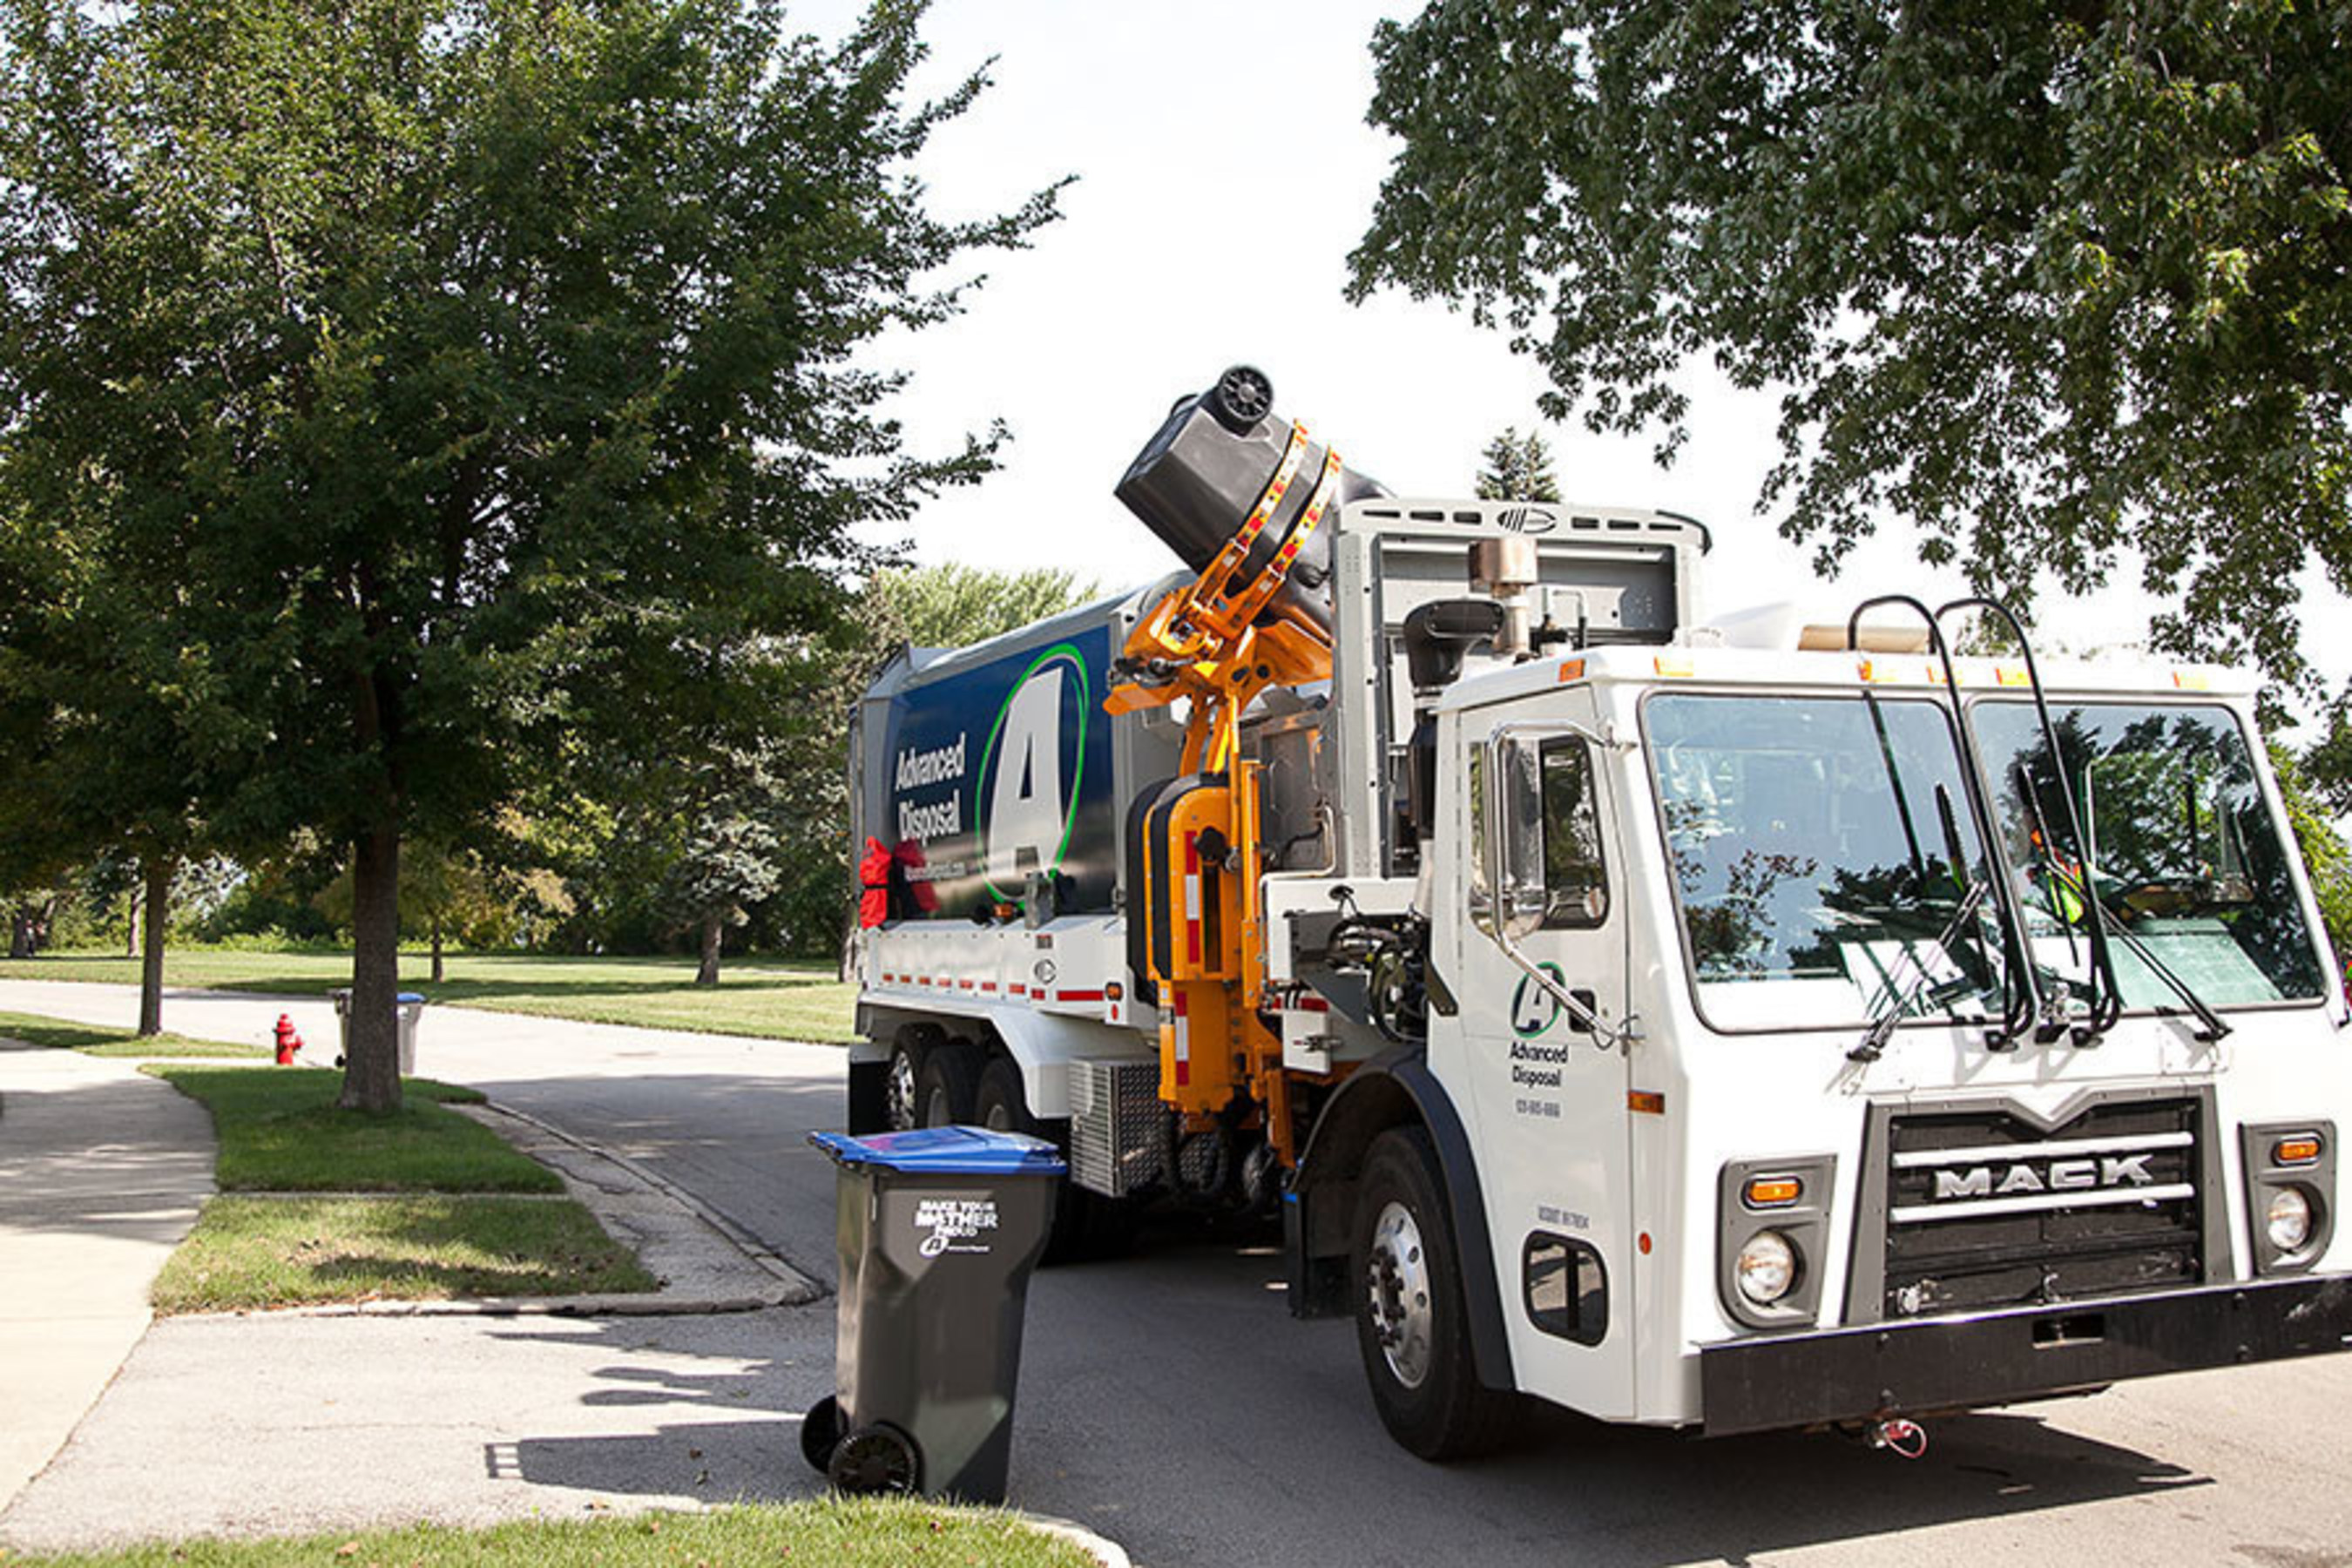 Advanced Disposal automated side-loading truck collecting 96-gallon cart in residential neighborhood.